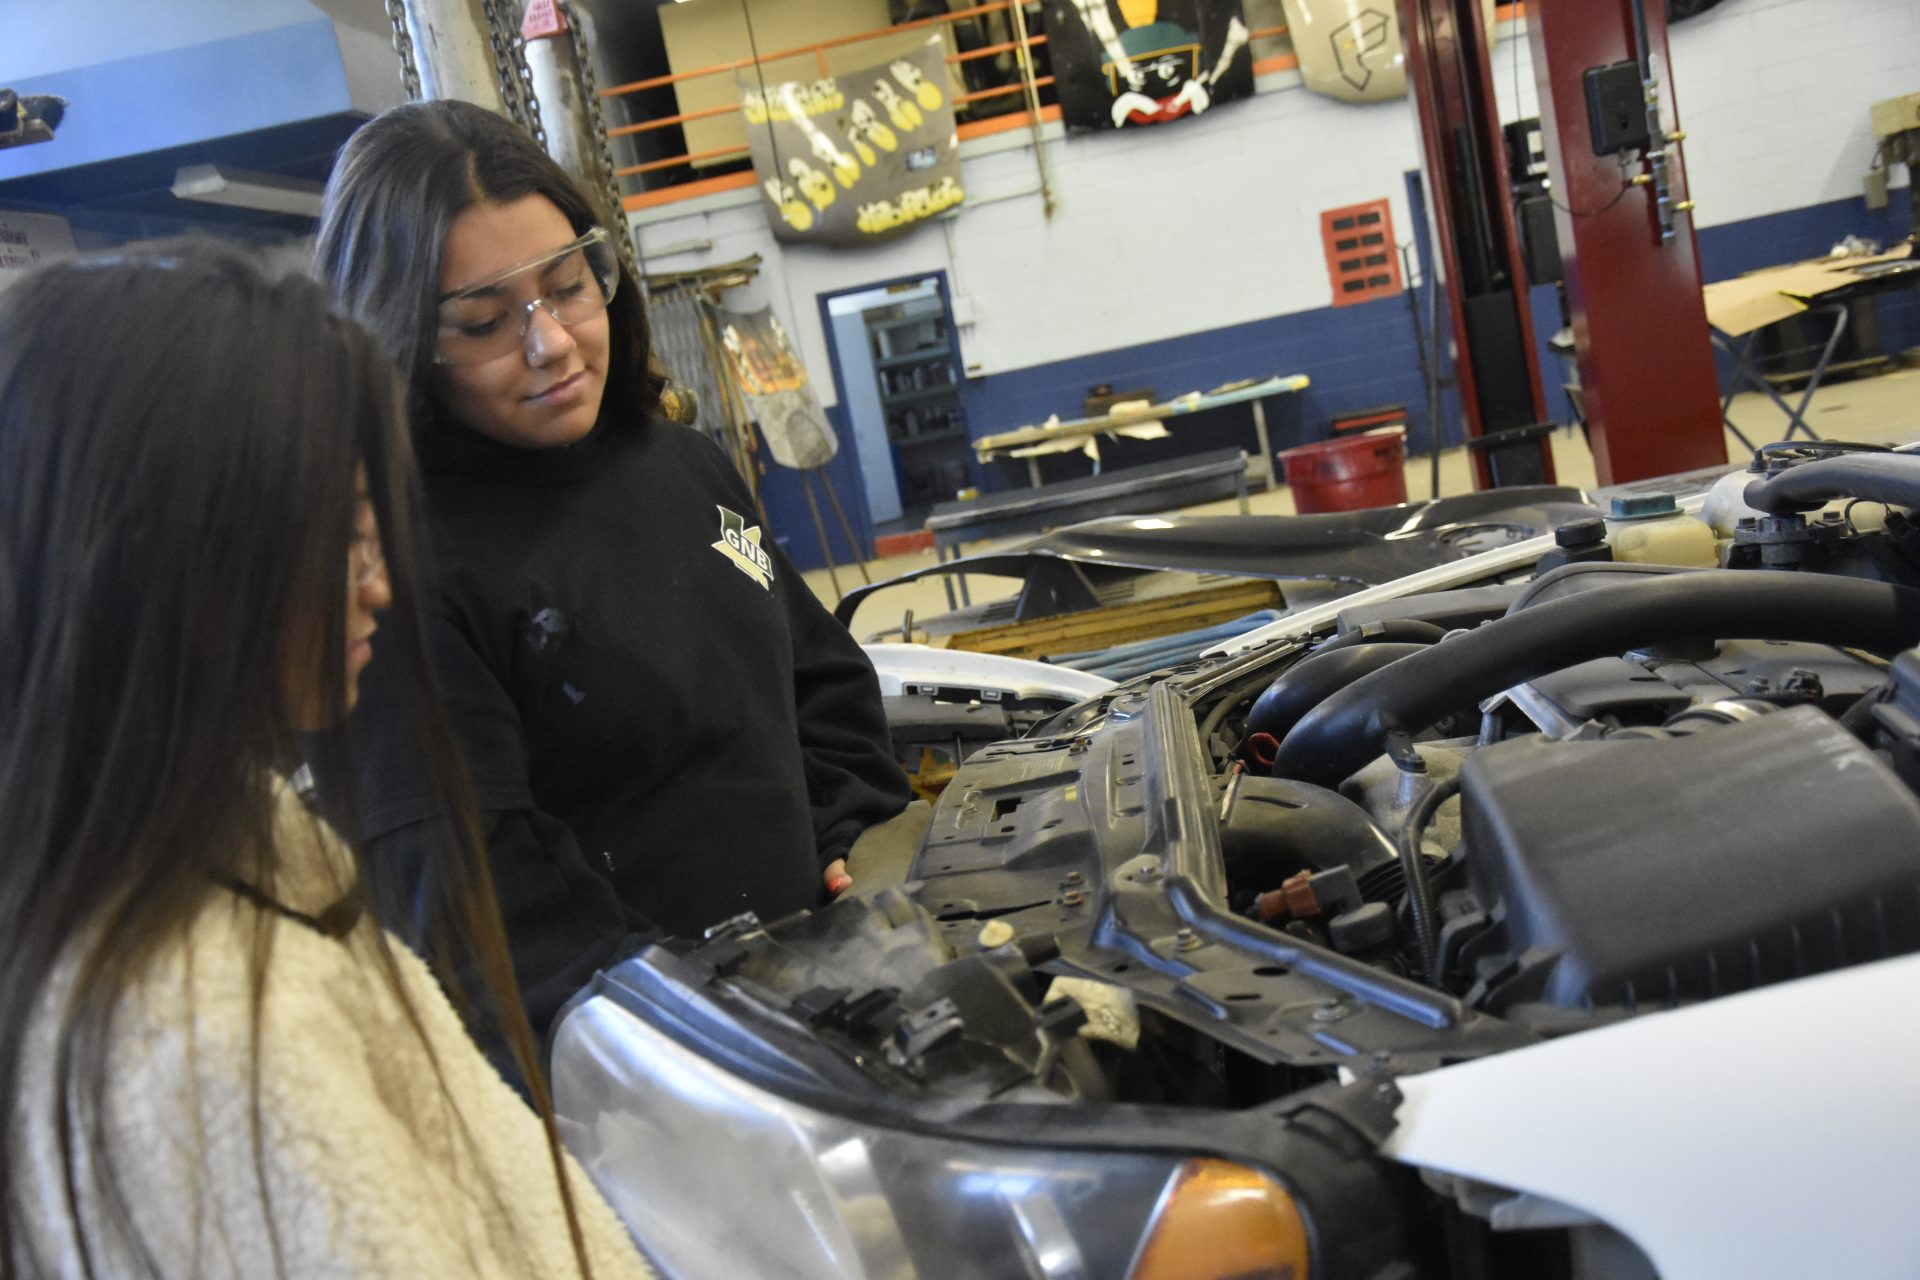 Students observing an engine